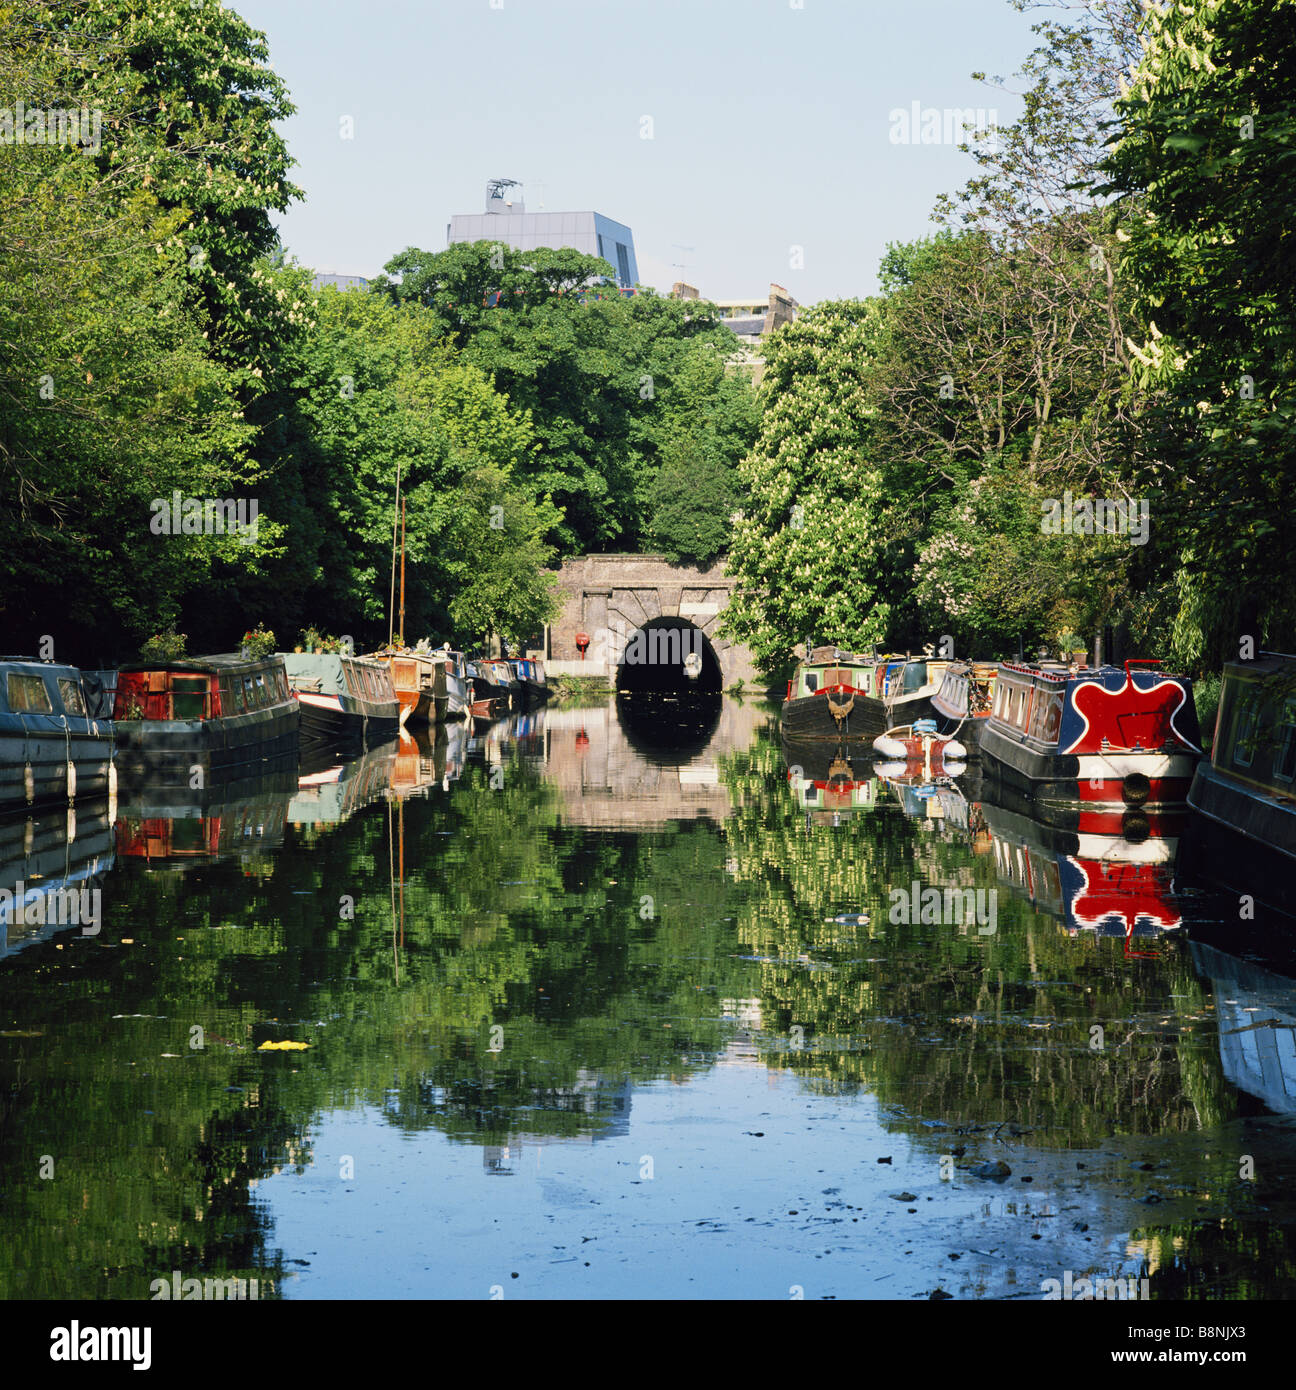 Houseboats on the Regents Canal, in Islington, London, England, UK, GB Stock Photo